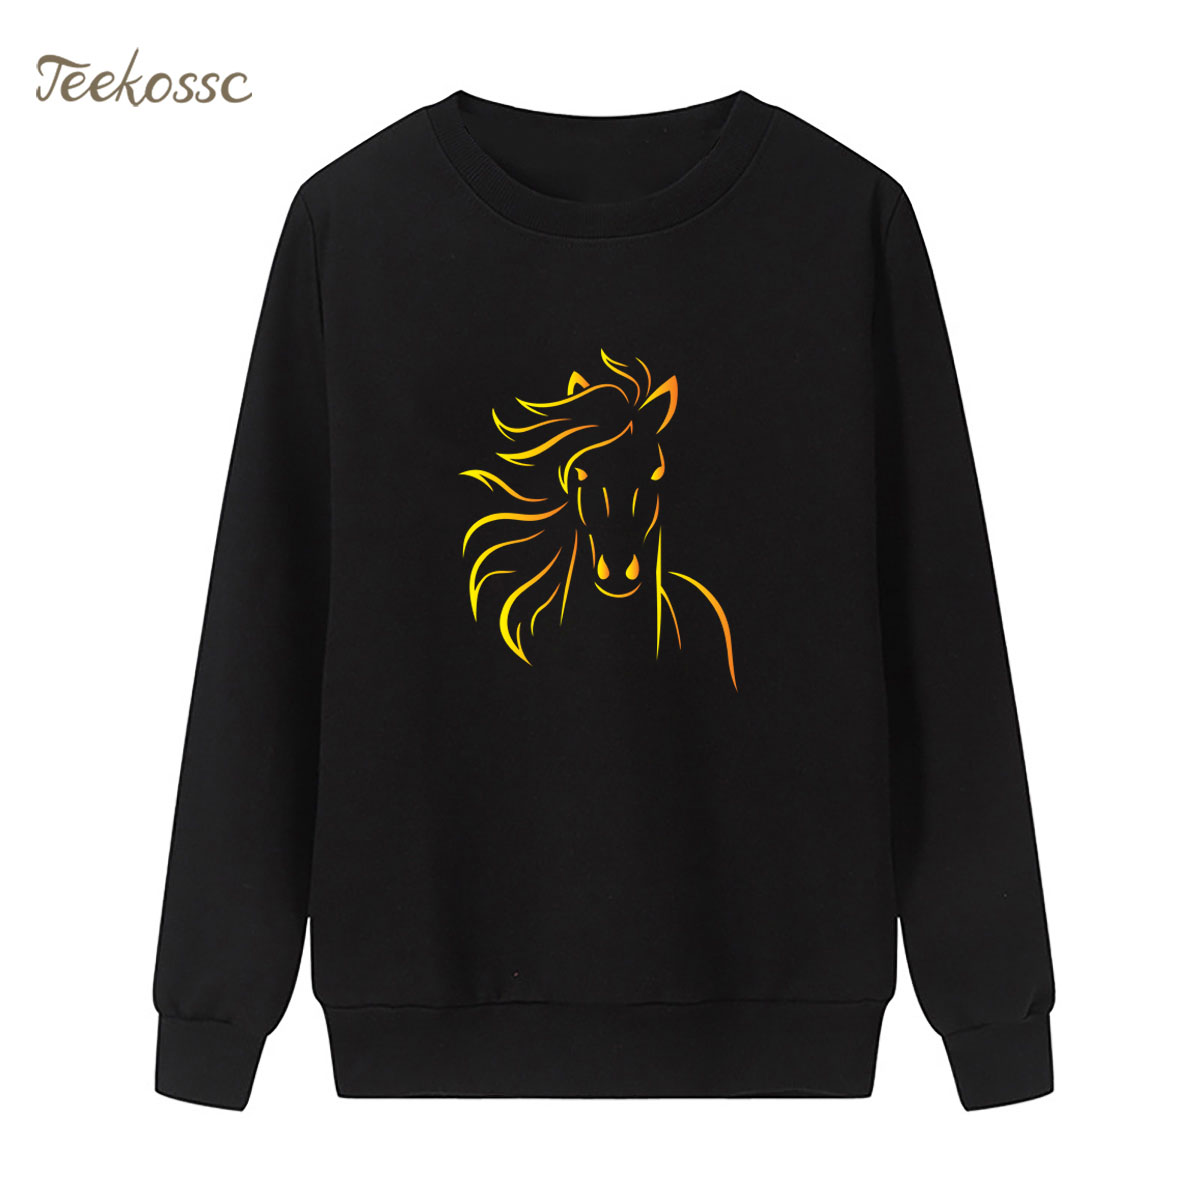 Horse Sweatshirt Black Cool Hoodie New Fashion Winter Autumn Women Lasdies Pullover Fleece Warm Loose Streetwear Brand Clothing